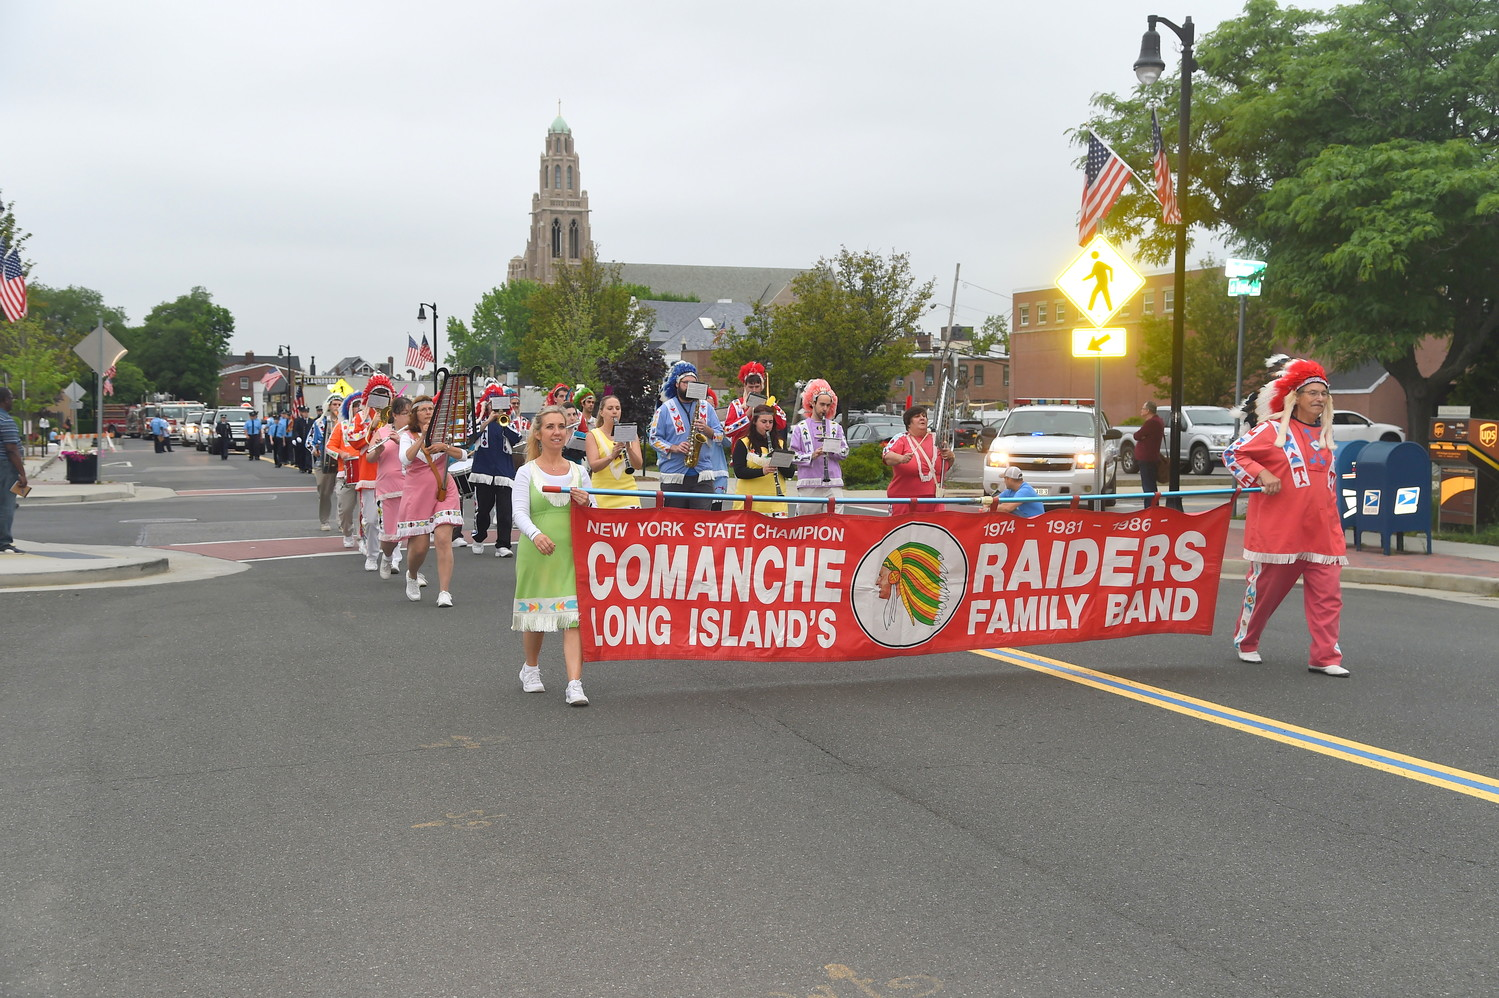 The Comanche Raiders, dubbed Long Island's Family Band, played music.